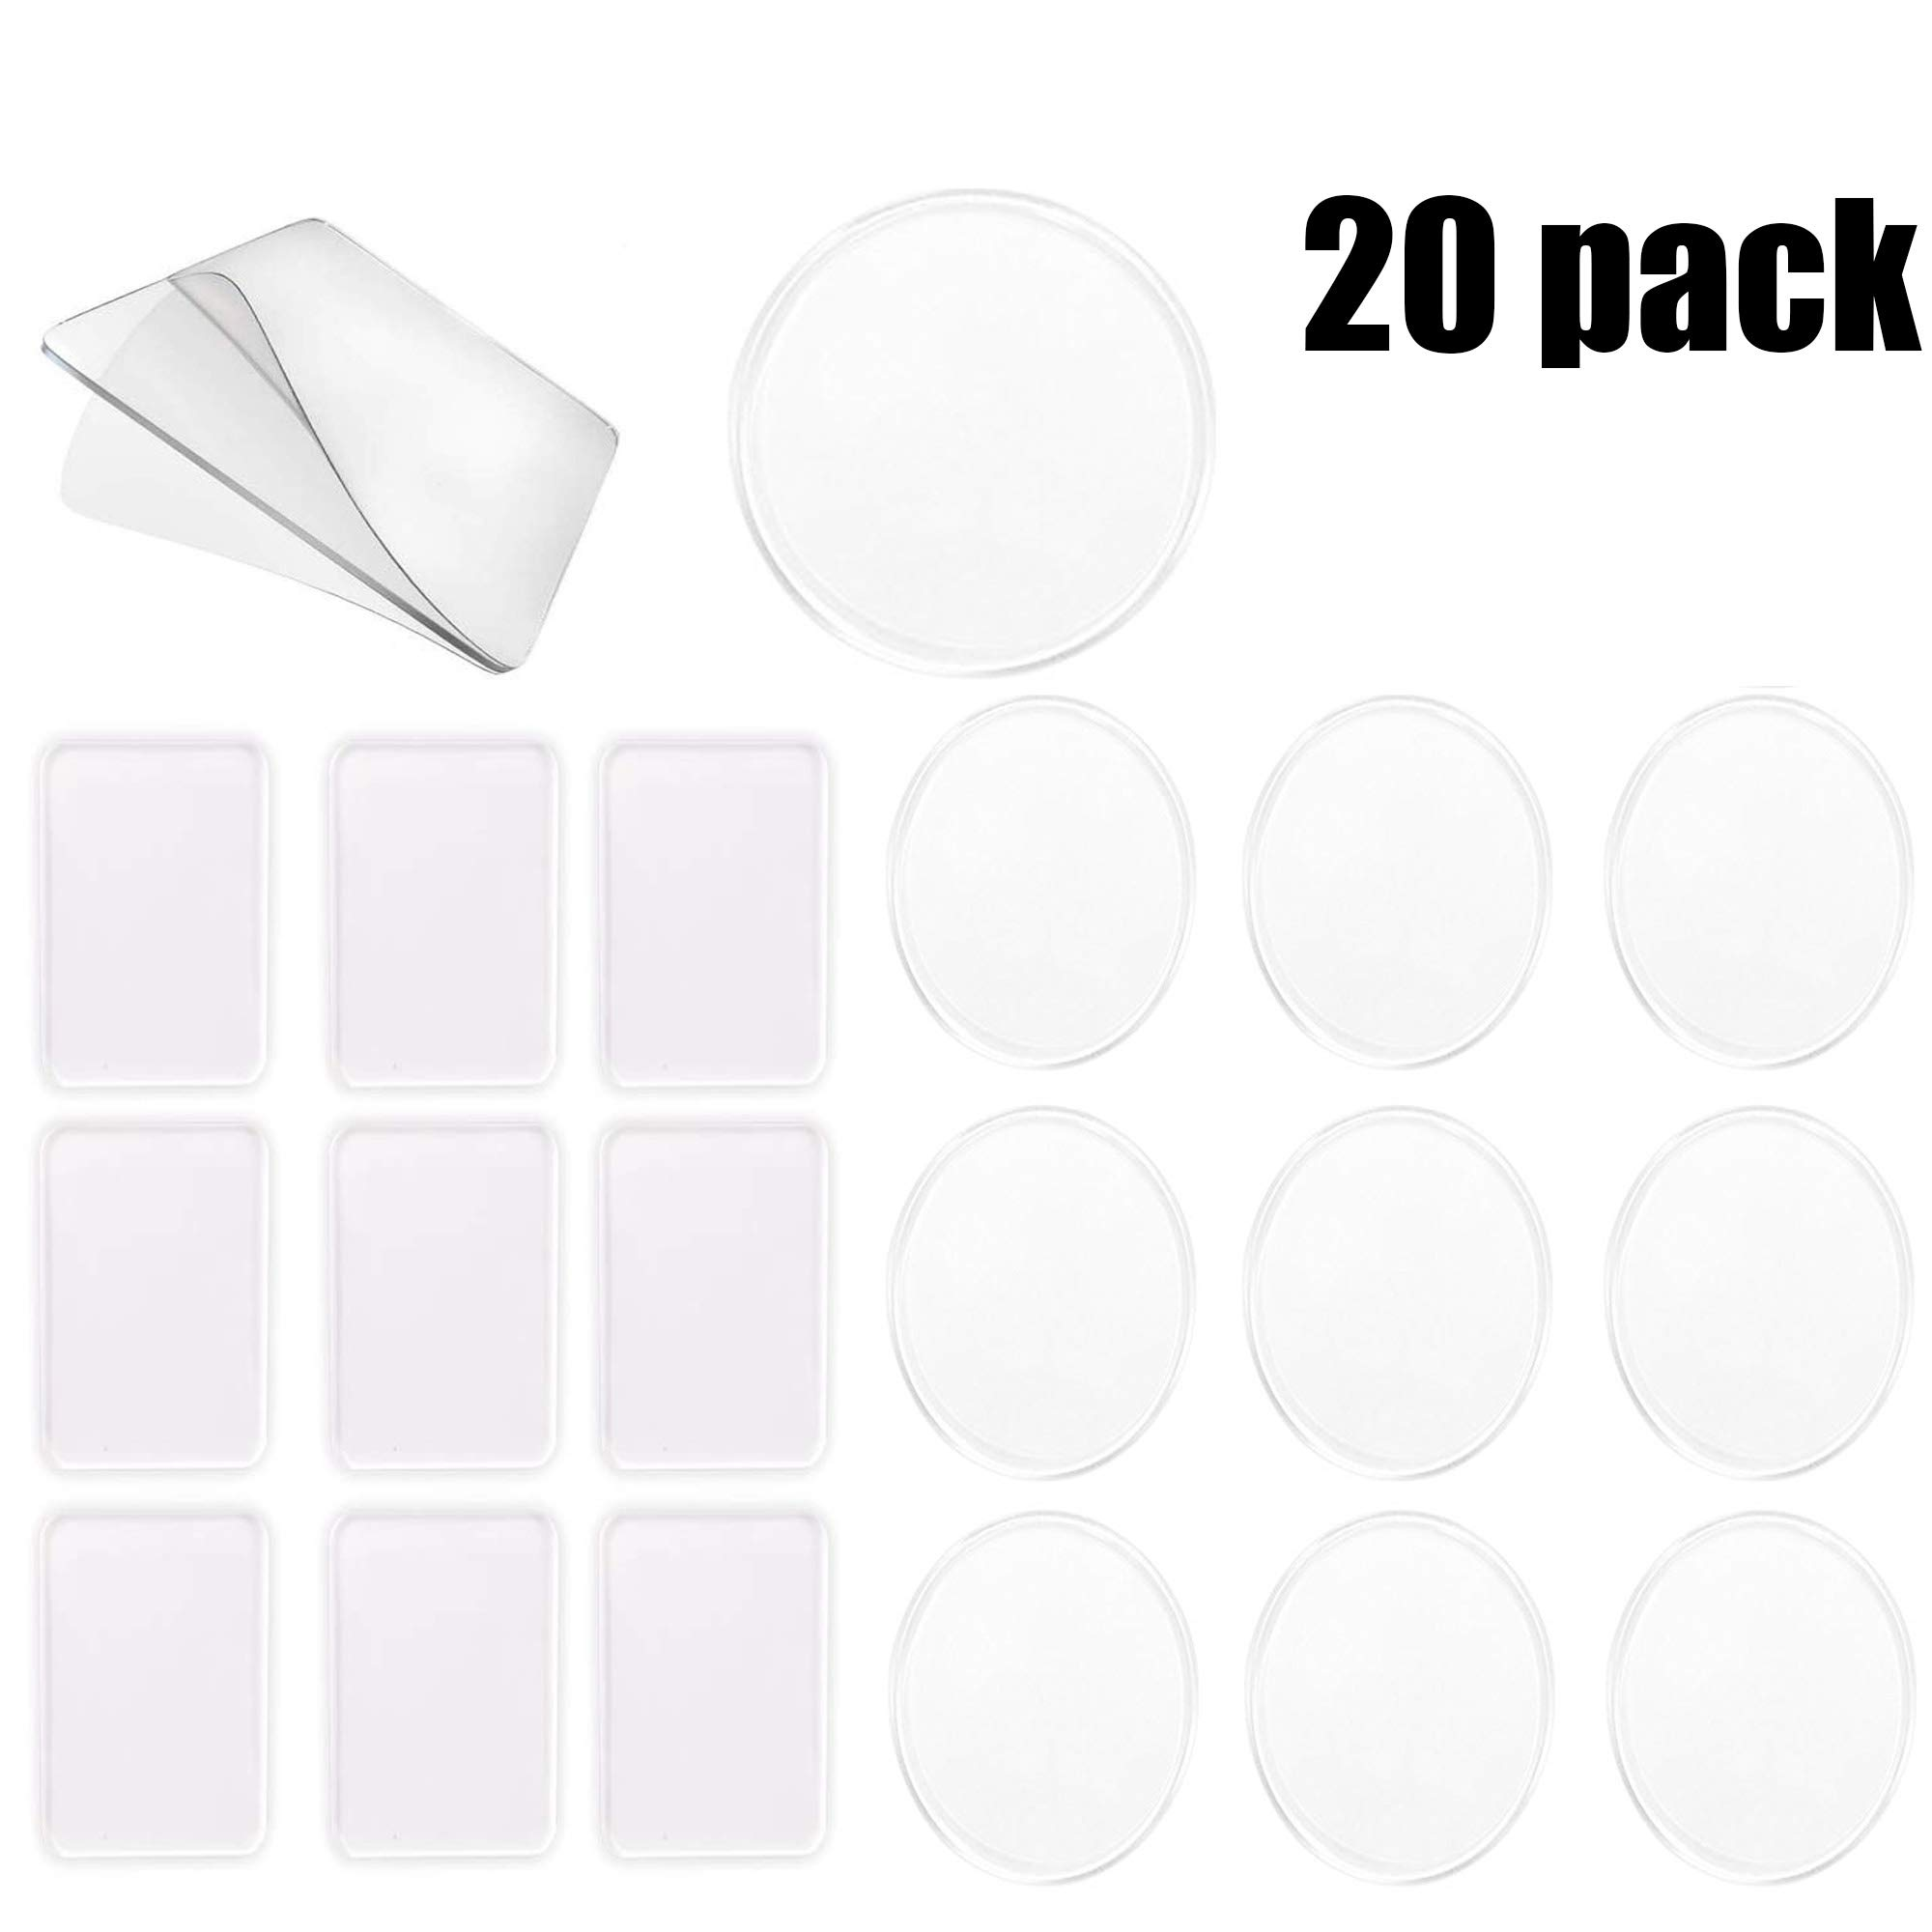 Tamicy 20pcs Removable Gel Pads(10 Rectangles and 10 Circles Each)-Super Sticky Anti-Slip Gripping Pads Clear Silicone Multipurpose Gel Pads Durable Washable for Car, Home, School, Office Use. by Tamicy